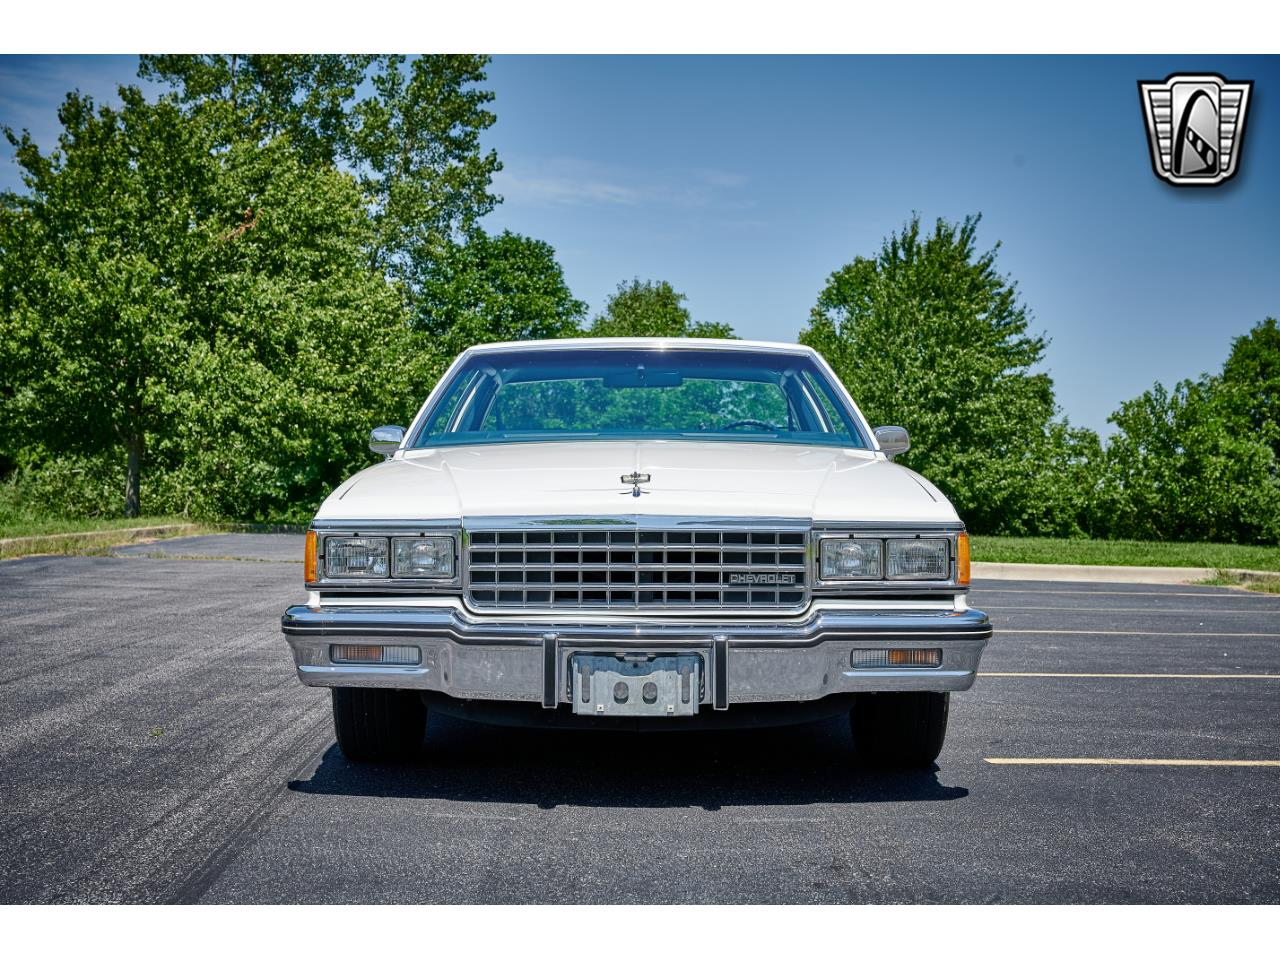 1985 chevrolet caprice for sale classiccars com cc 1382027 1985 chevrolet caprice for sale